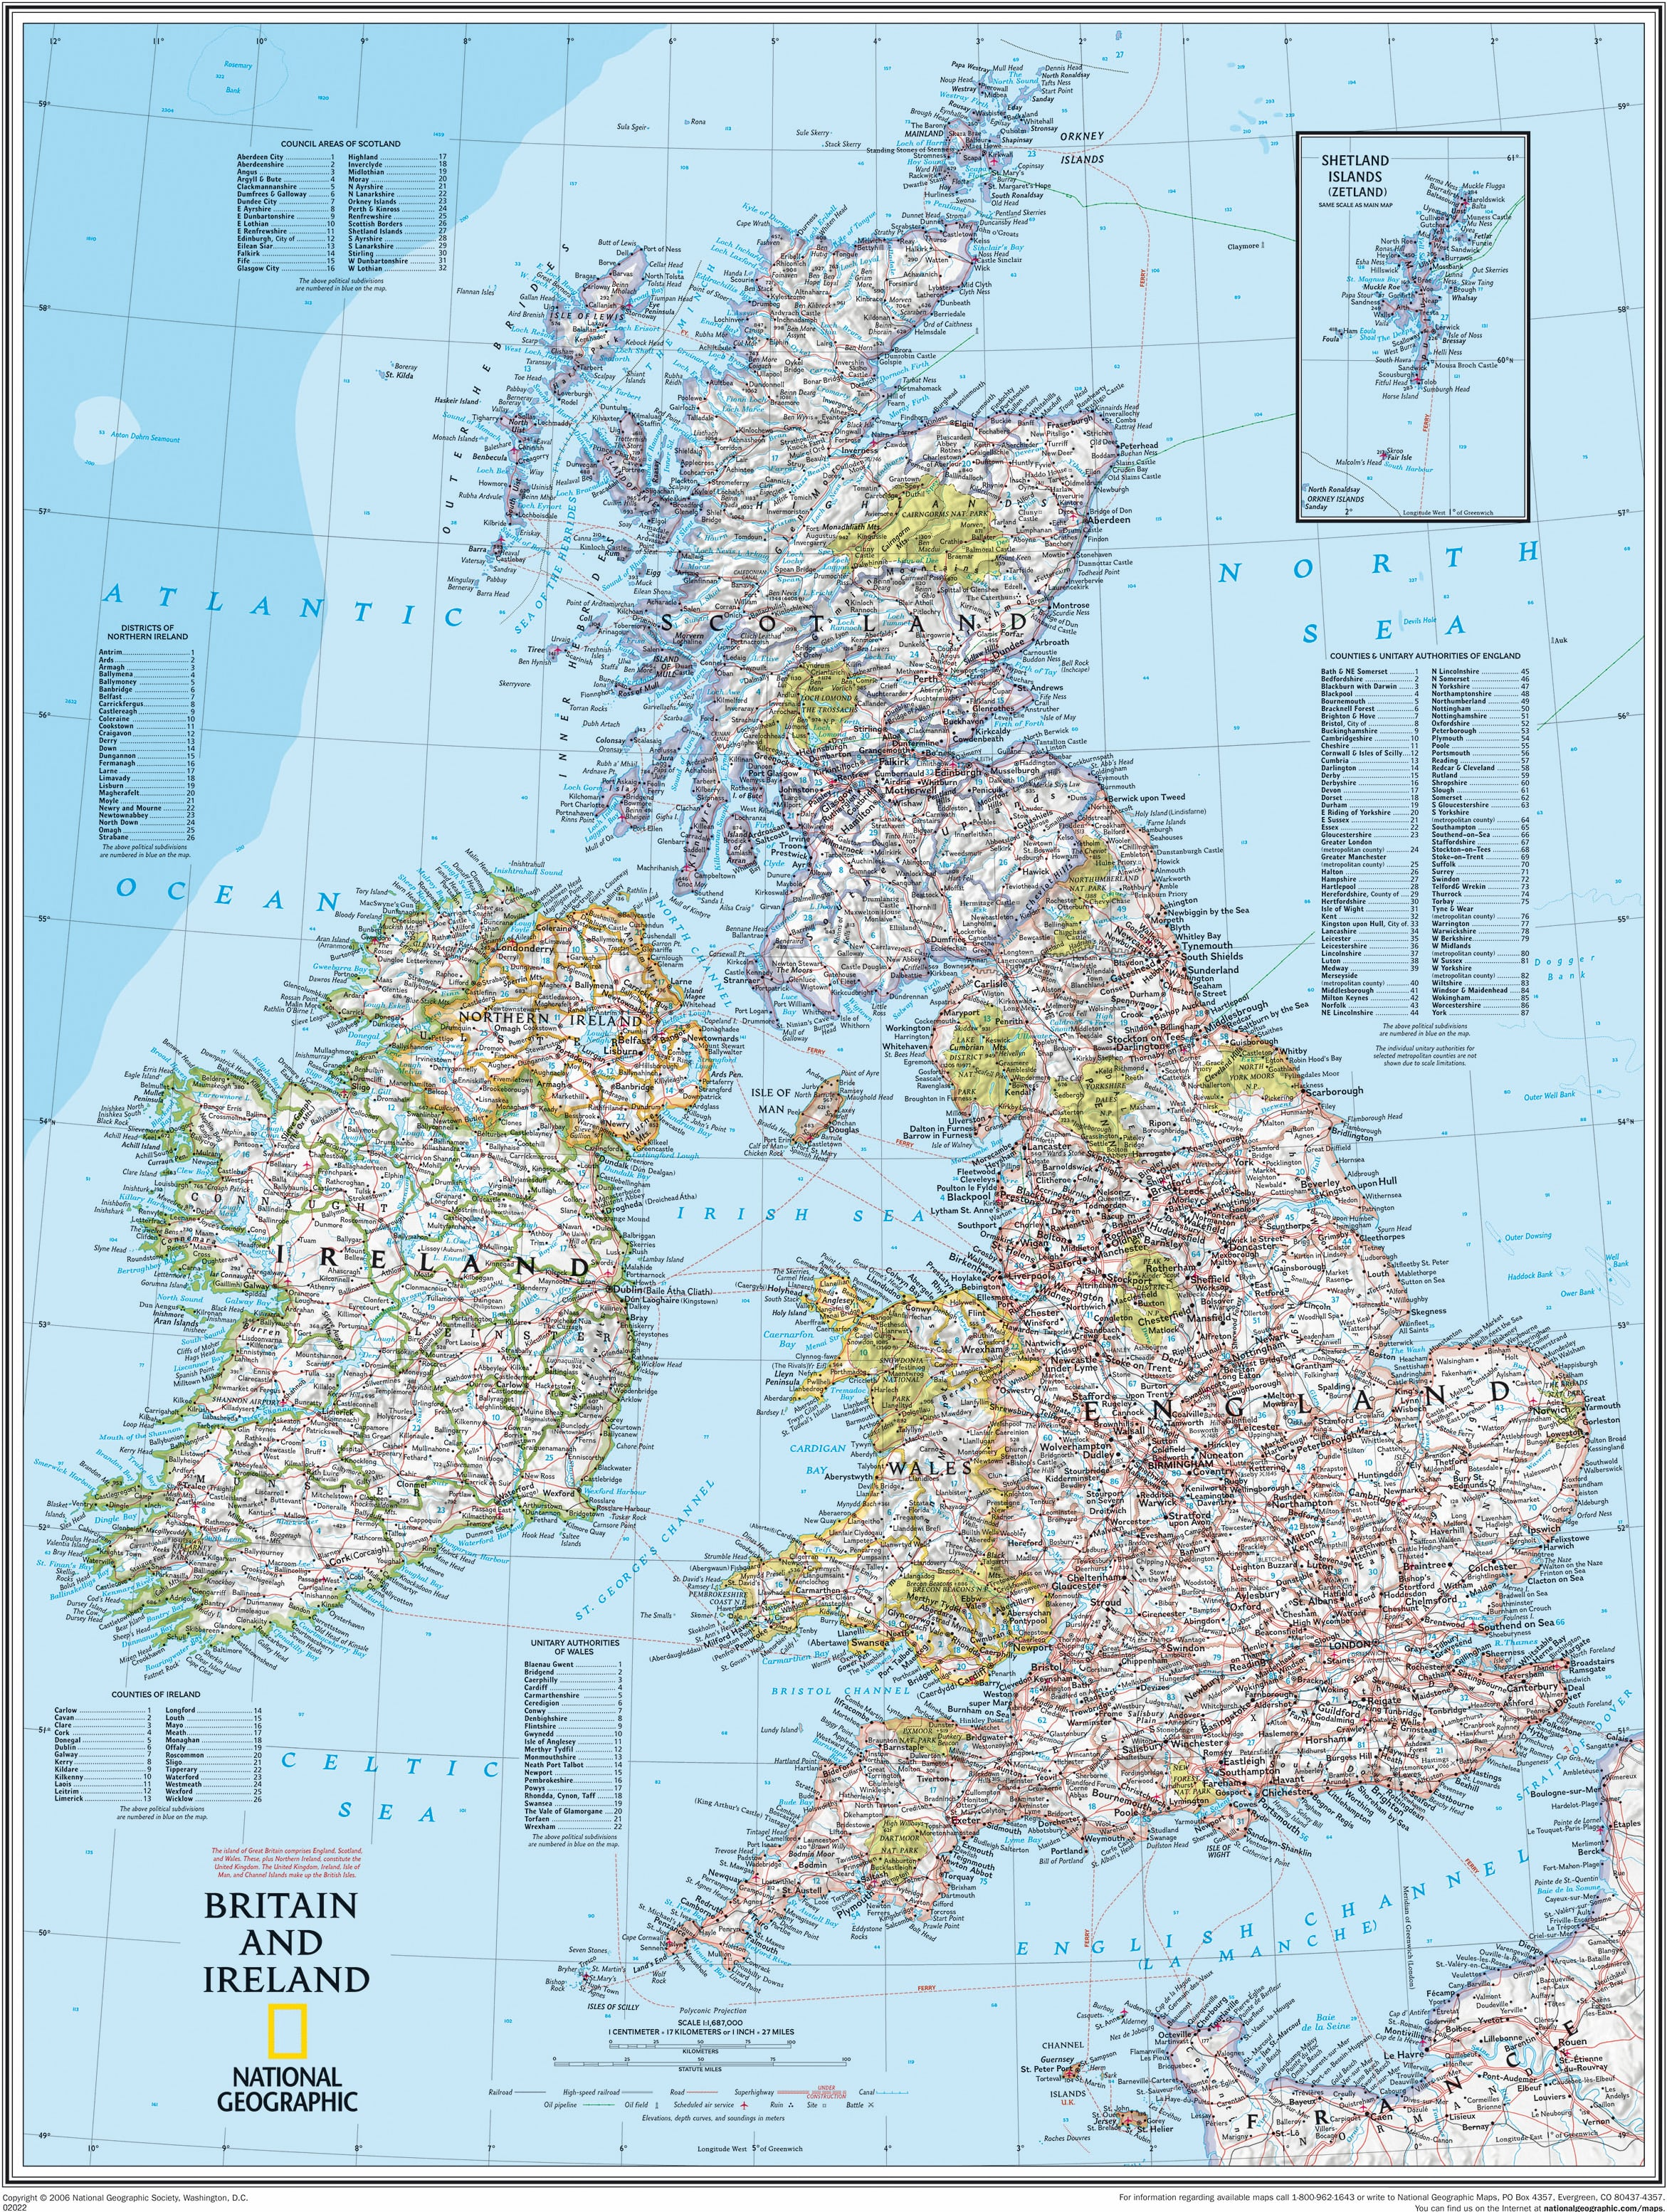 Britain And Ireland Map.Great Britain And Ireland Wall Map Westeurope Countries Europe